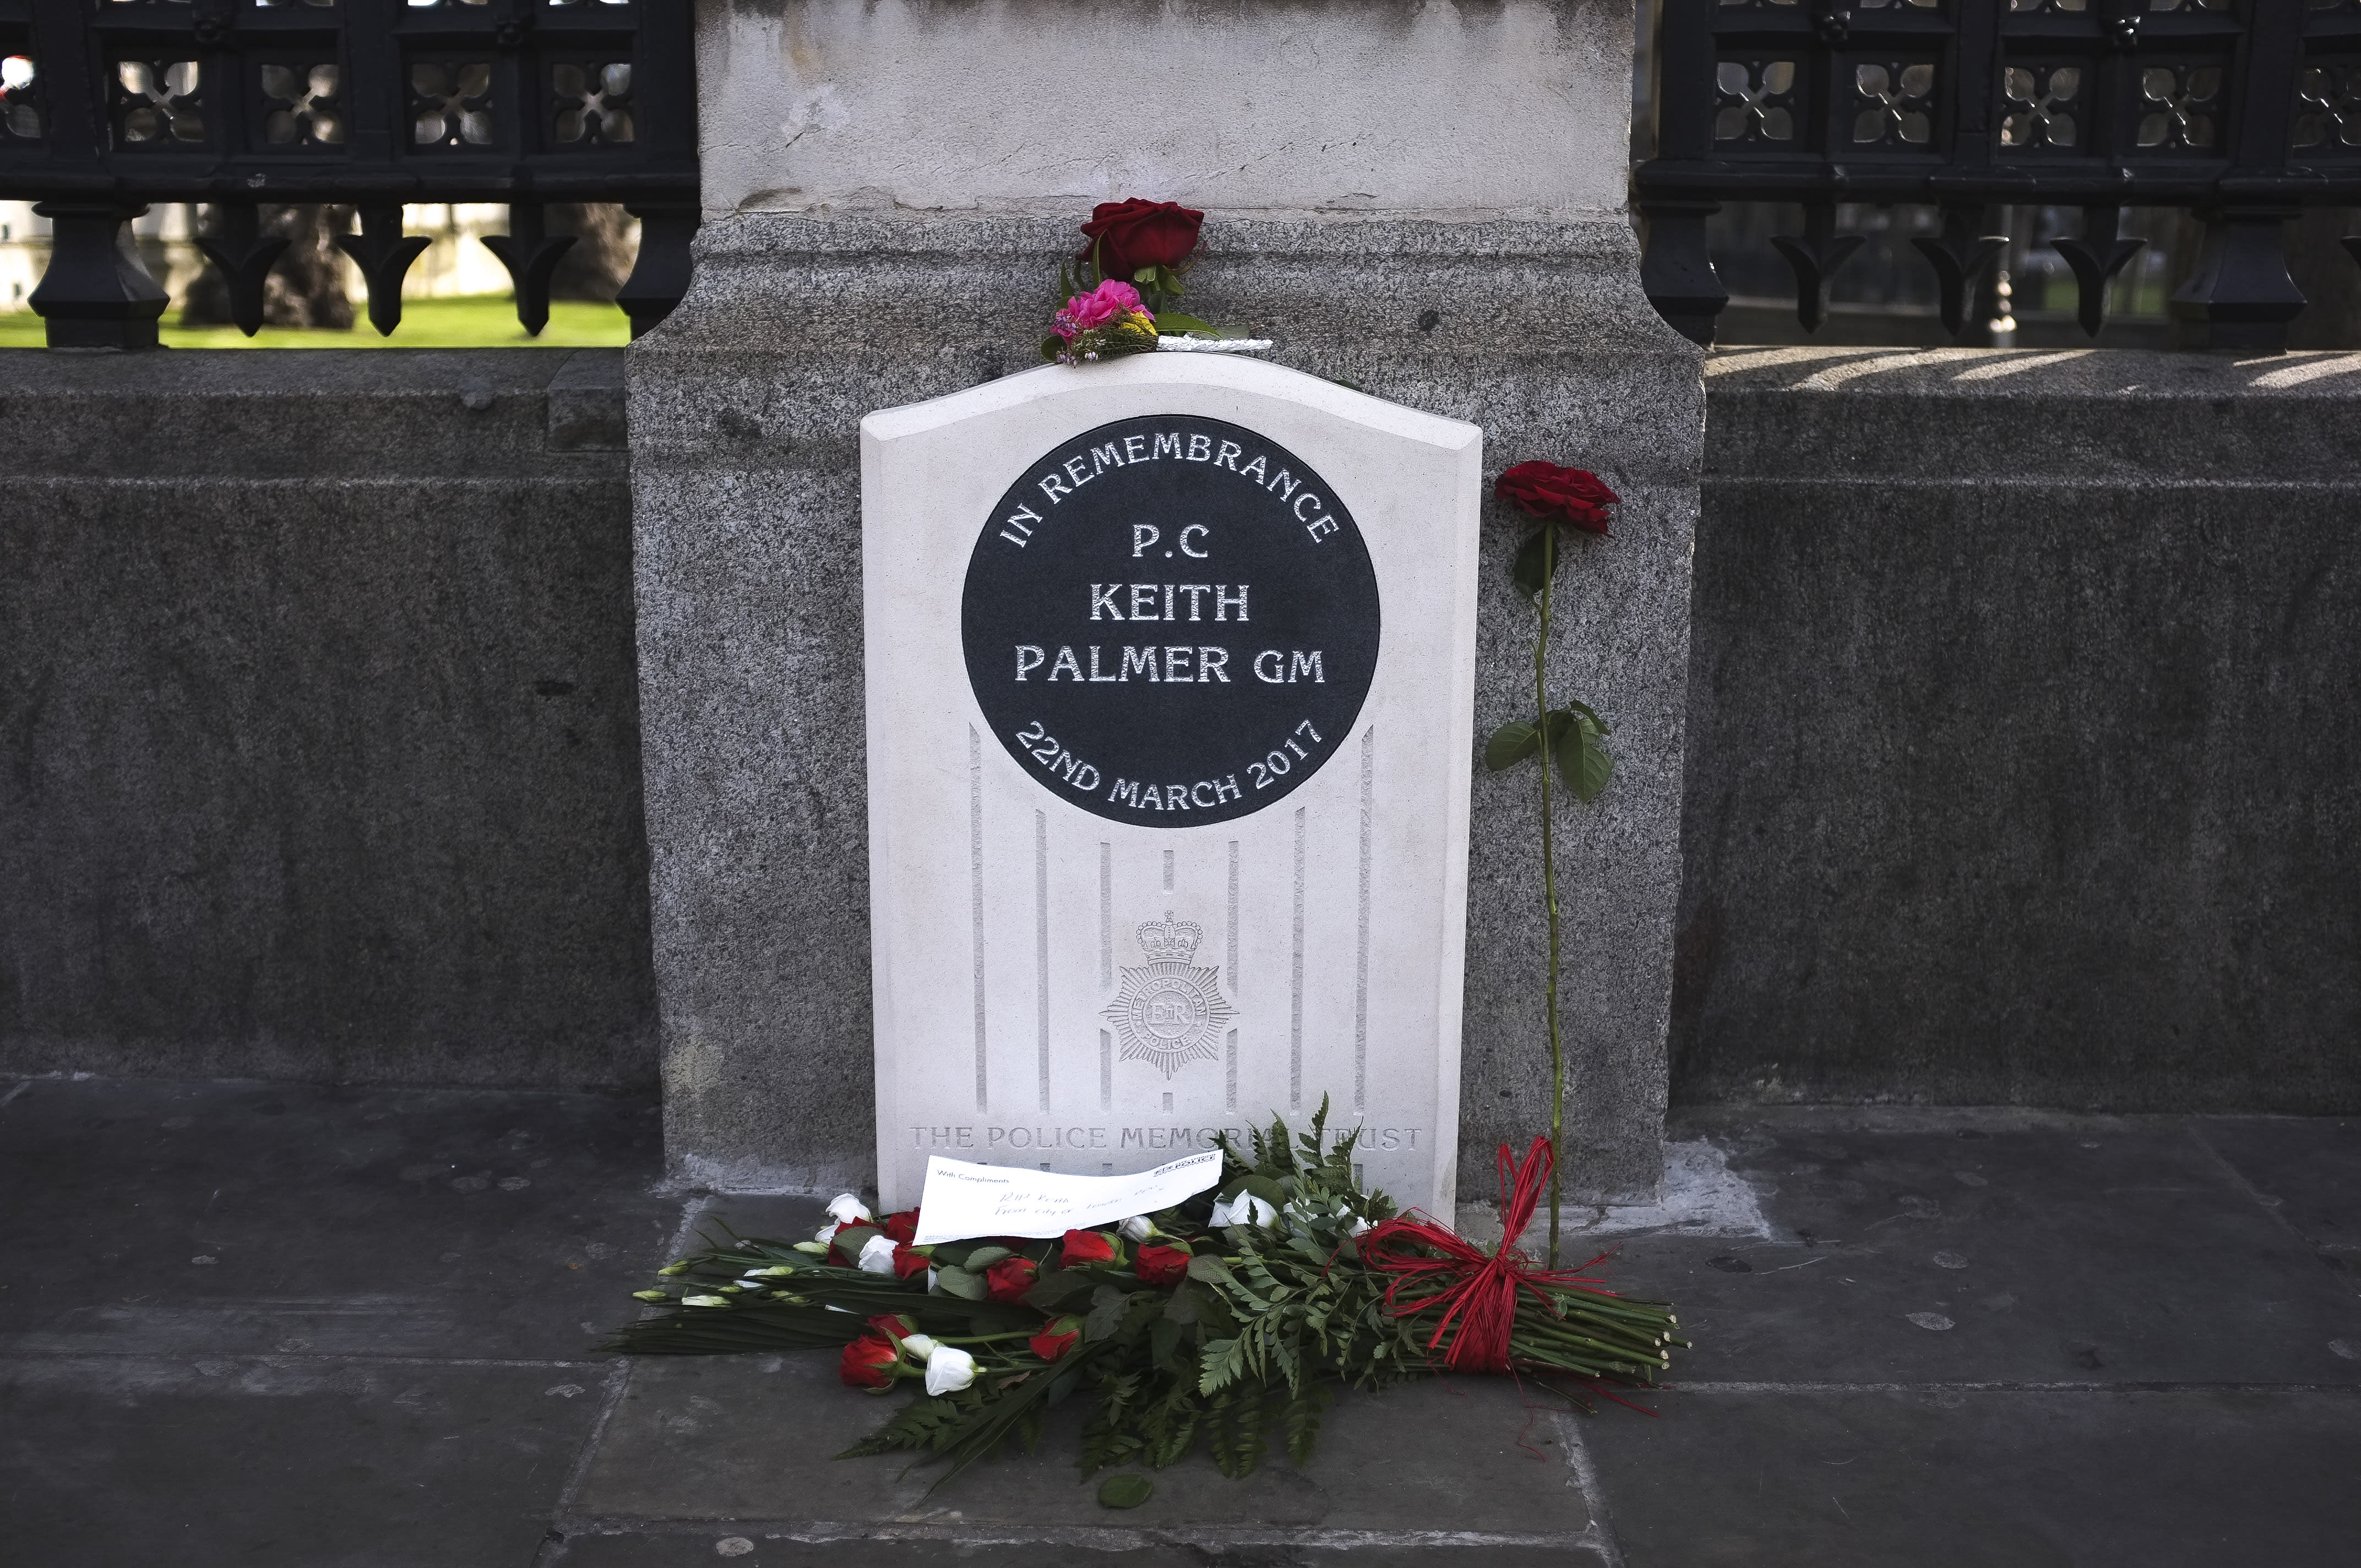 Pedestrians walk past the unveiled permanent memorial to PC Keith Palmer, the police officer killed in the March 22, 2017 Westminster terror attack, outside the Houses of Parliament in London on February 22, 2019. PC Keith Palmer was fatally stabbed as he stood guard in front of Britain's Houes of Parliament in Westminster on March 22, 2017 by Khalid Masood after the 52 year-old convert to Islam drove into pedestrians at high speed near parliament, killing four other people. (Photo by Alberto Pezzali/NurPhoto via Getty Images)